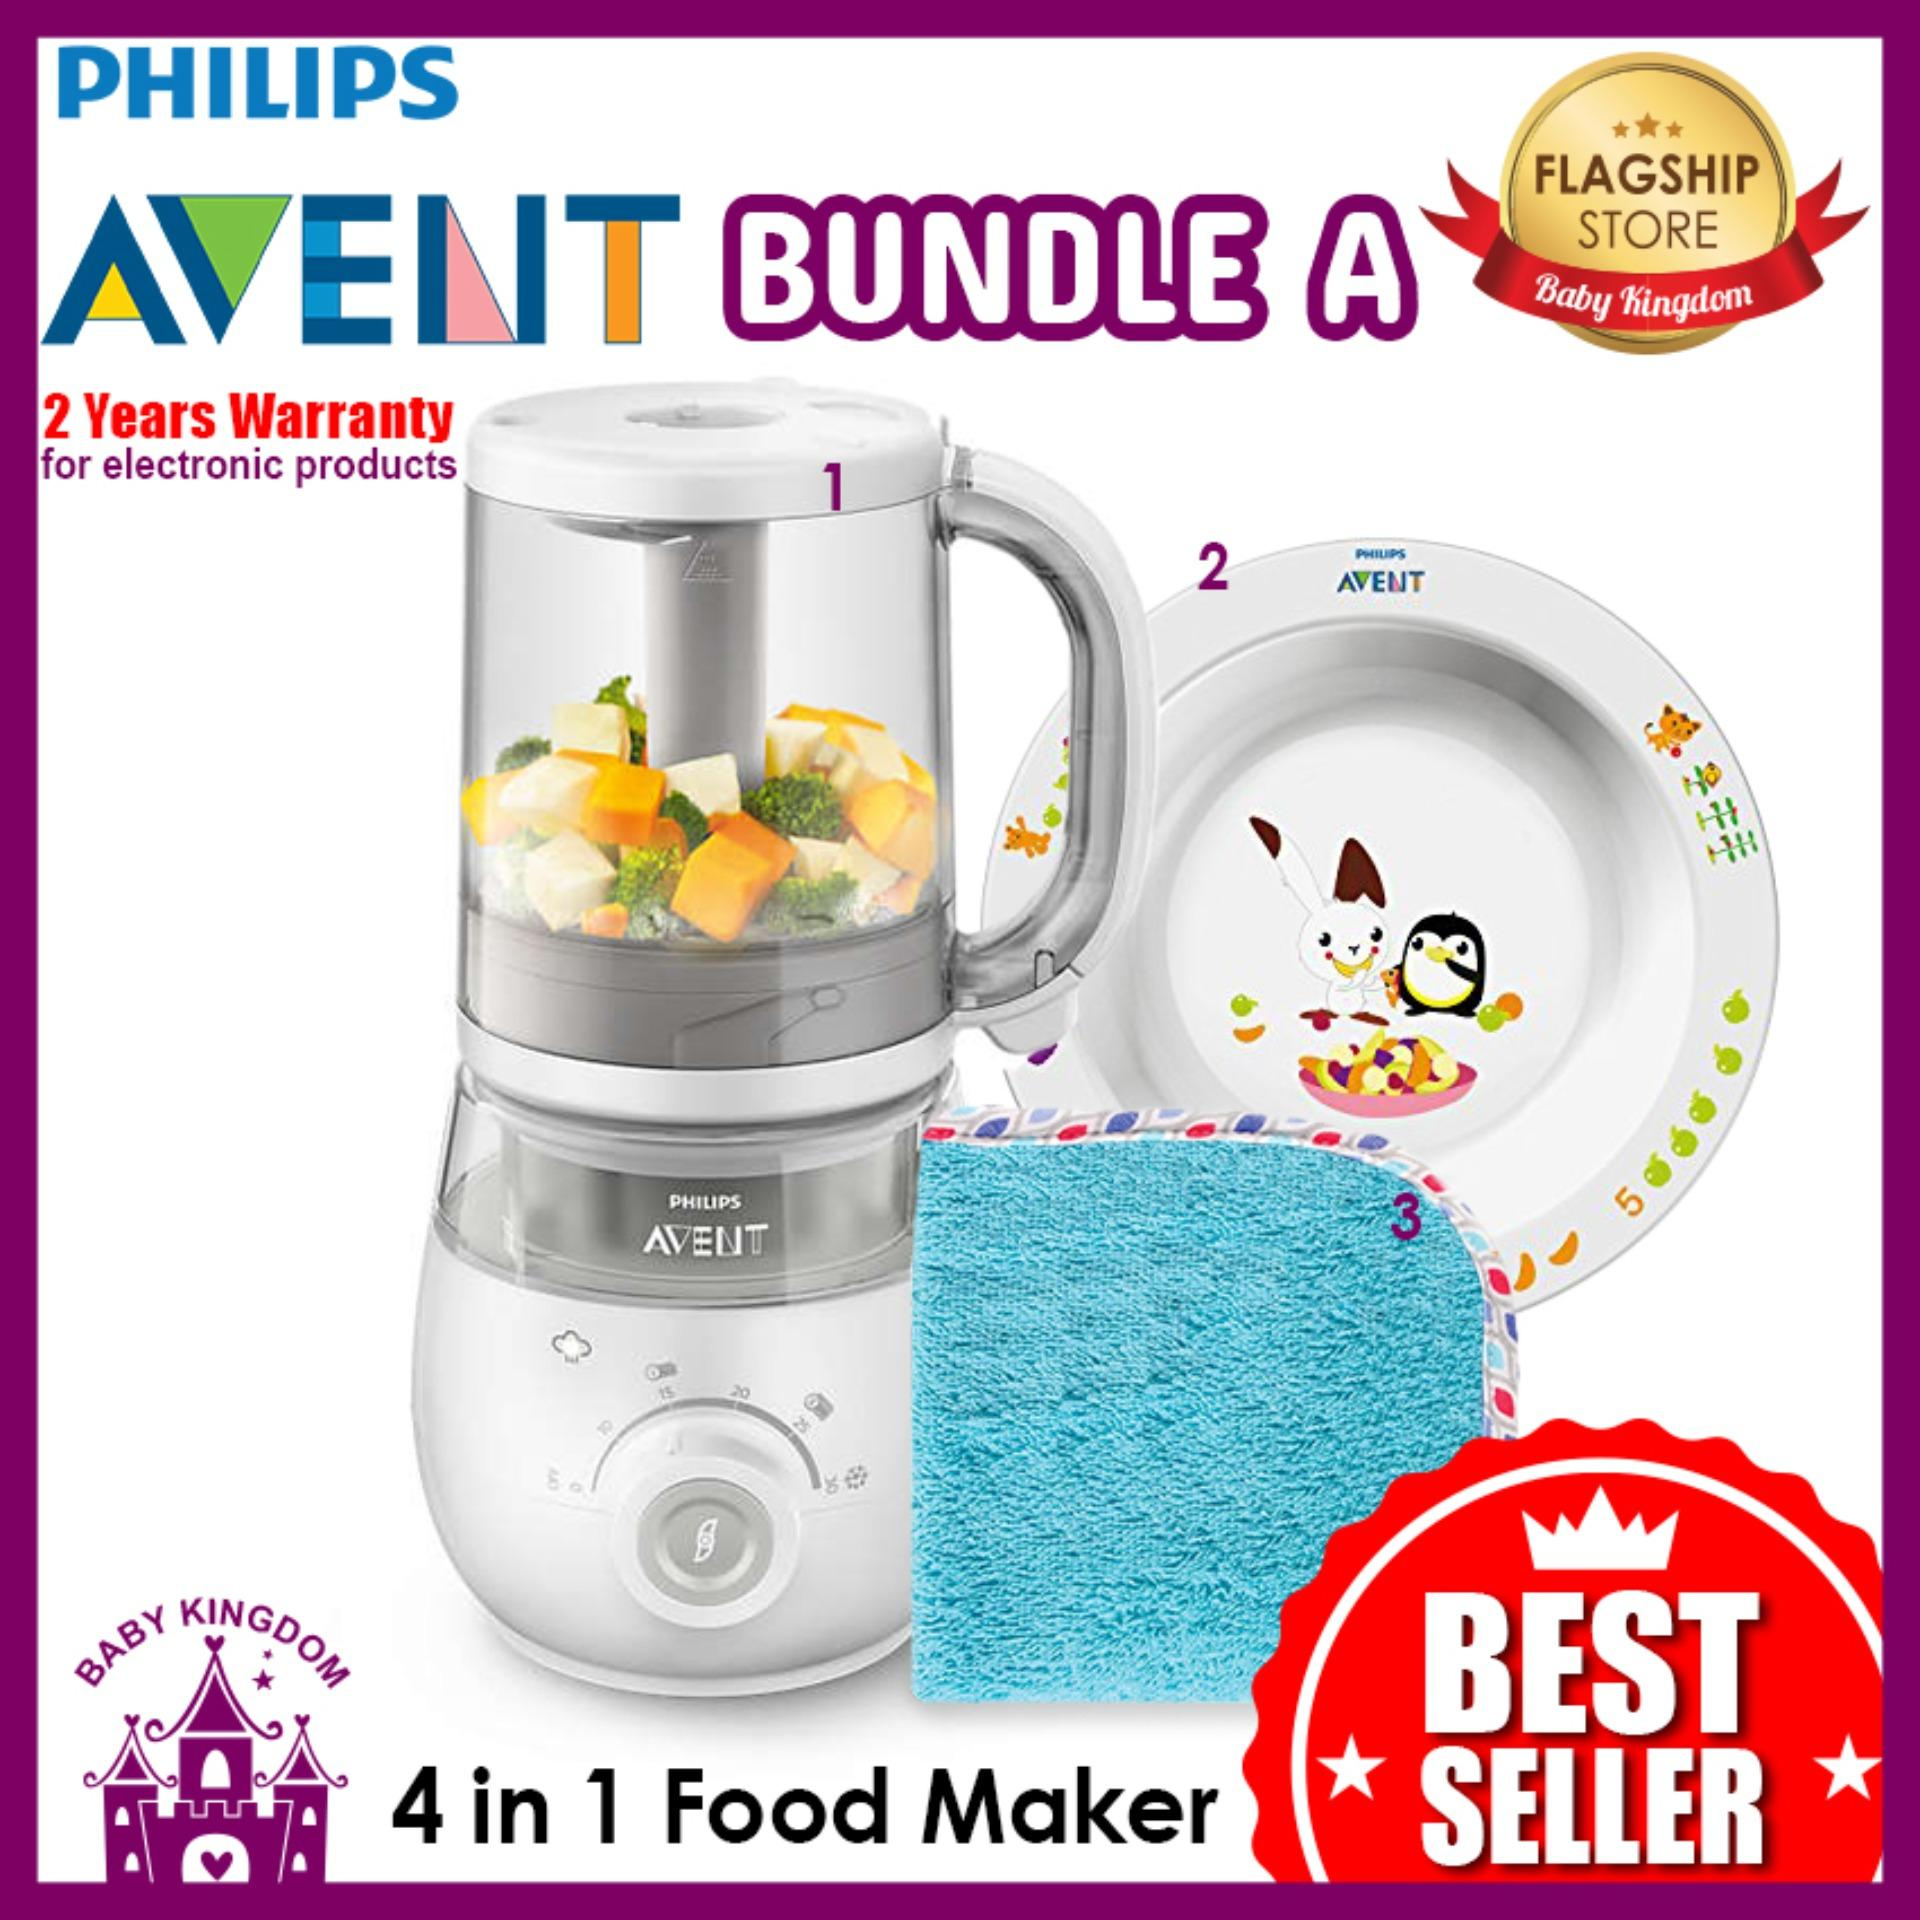 Philips Avent 4 In 1 Healthy Baby Food Maker Bundle A Compare Prices